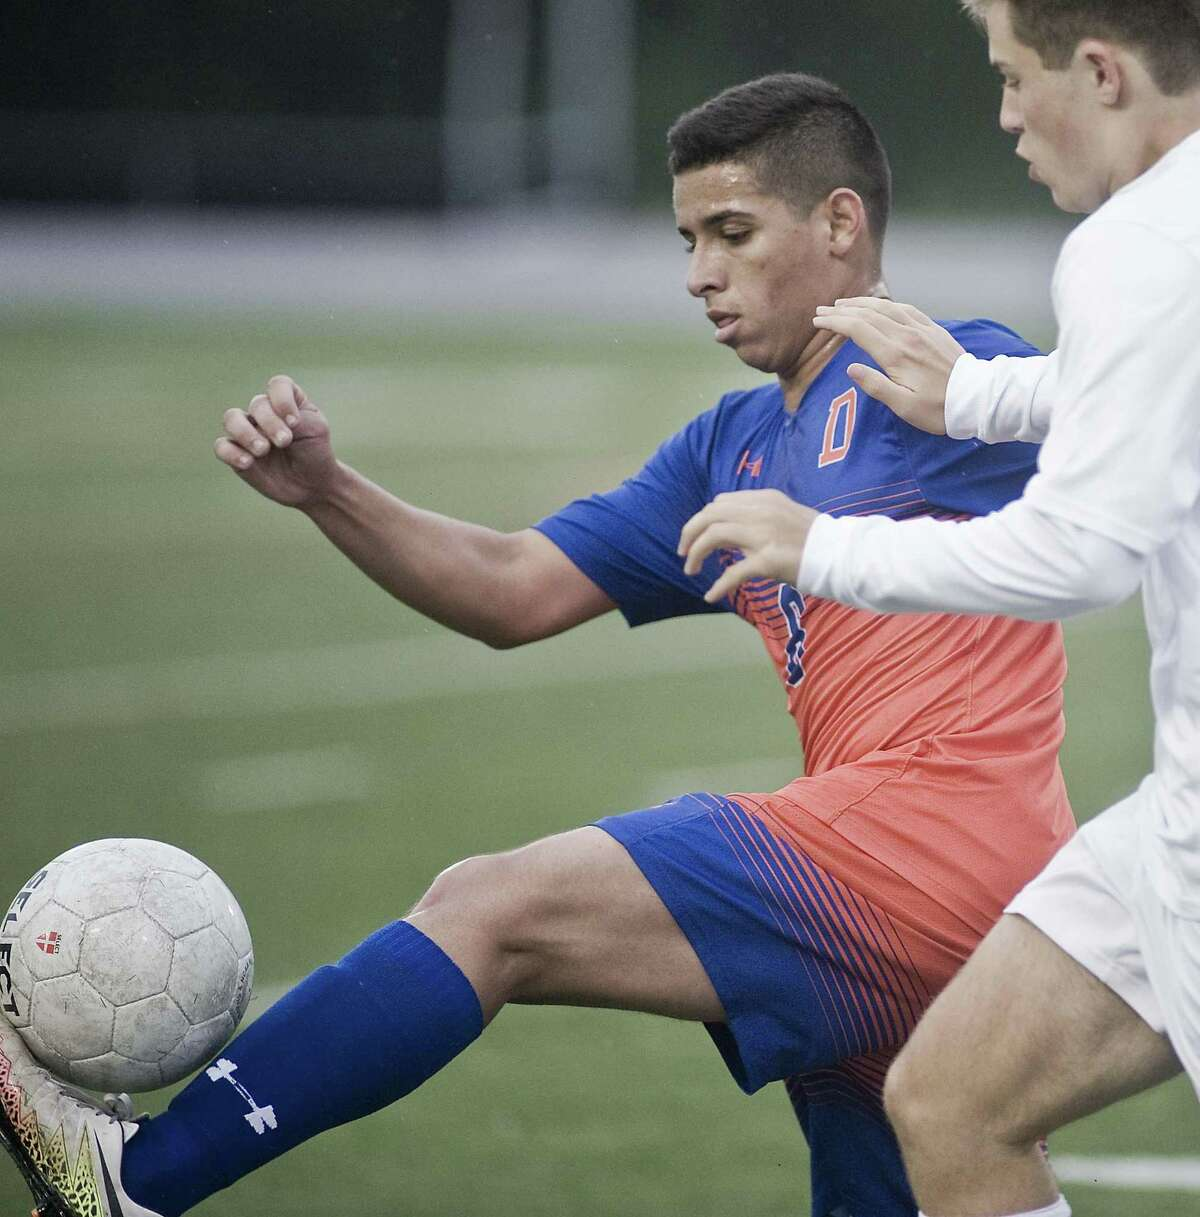 Danbury High School's Erik Costa gets a foot on the ball during a game against Wilton High School, played at Danbury. Monday, Oct. 15, 2018